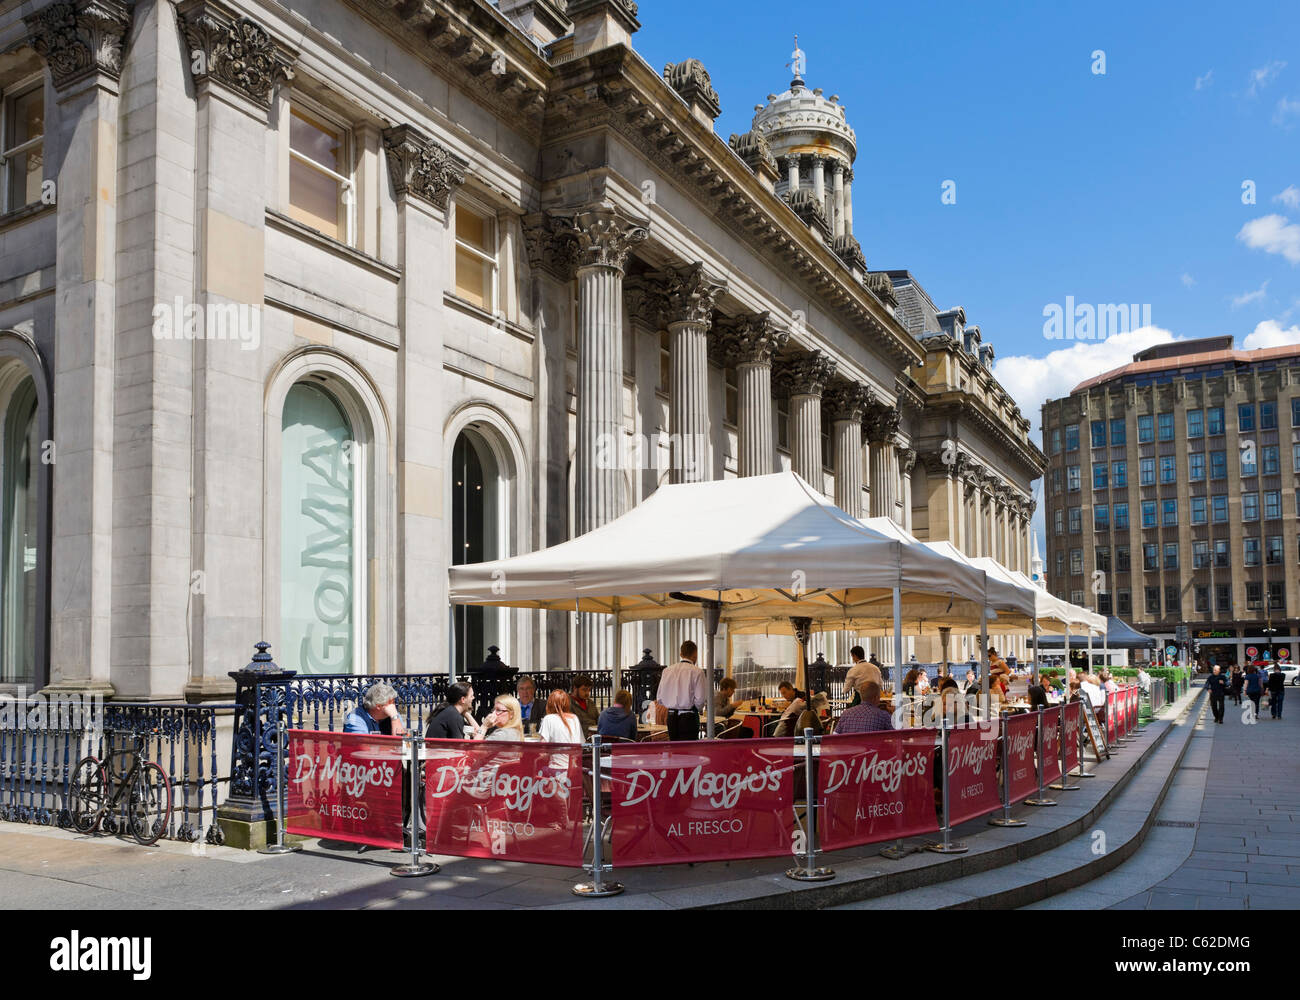 Di Maggios Restaurant outside the Gallery of Modern Art, Royal Exchange Square, Merchant City, Glasgow, Scotland, - Stock Image